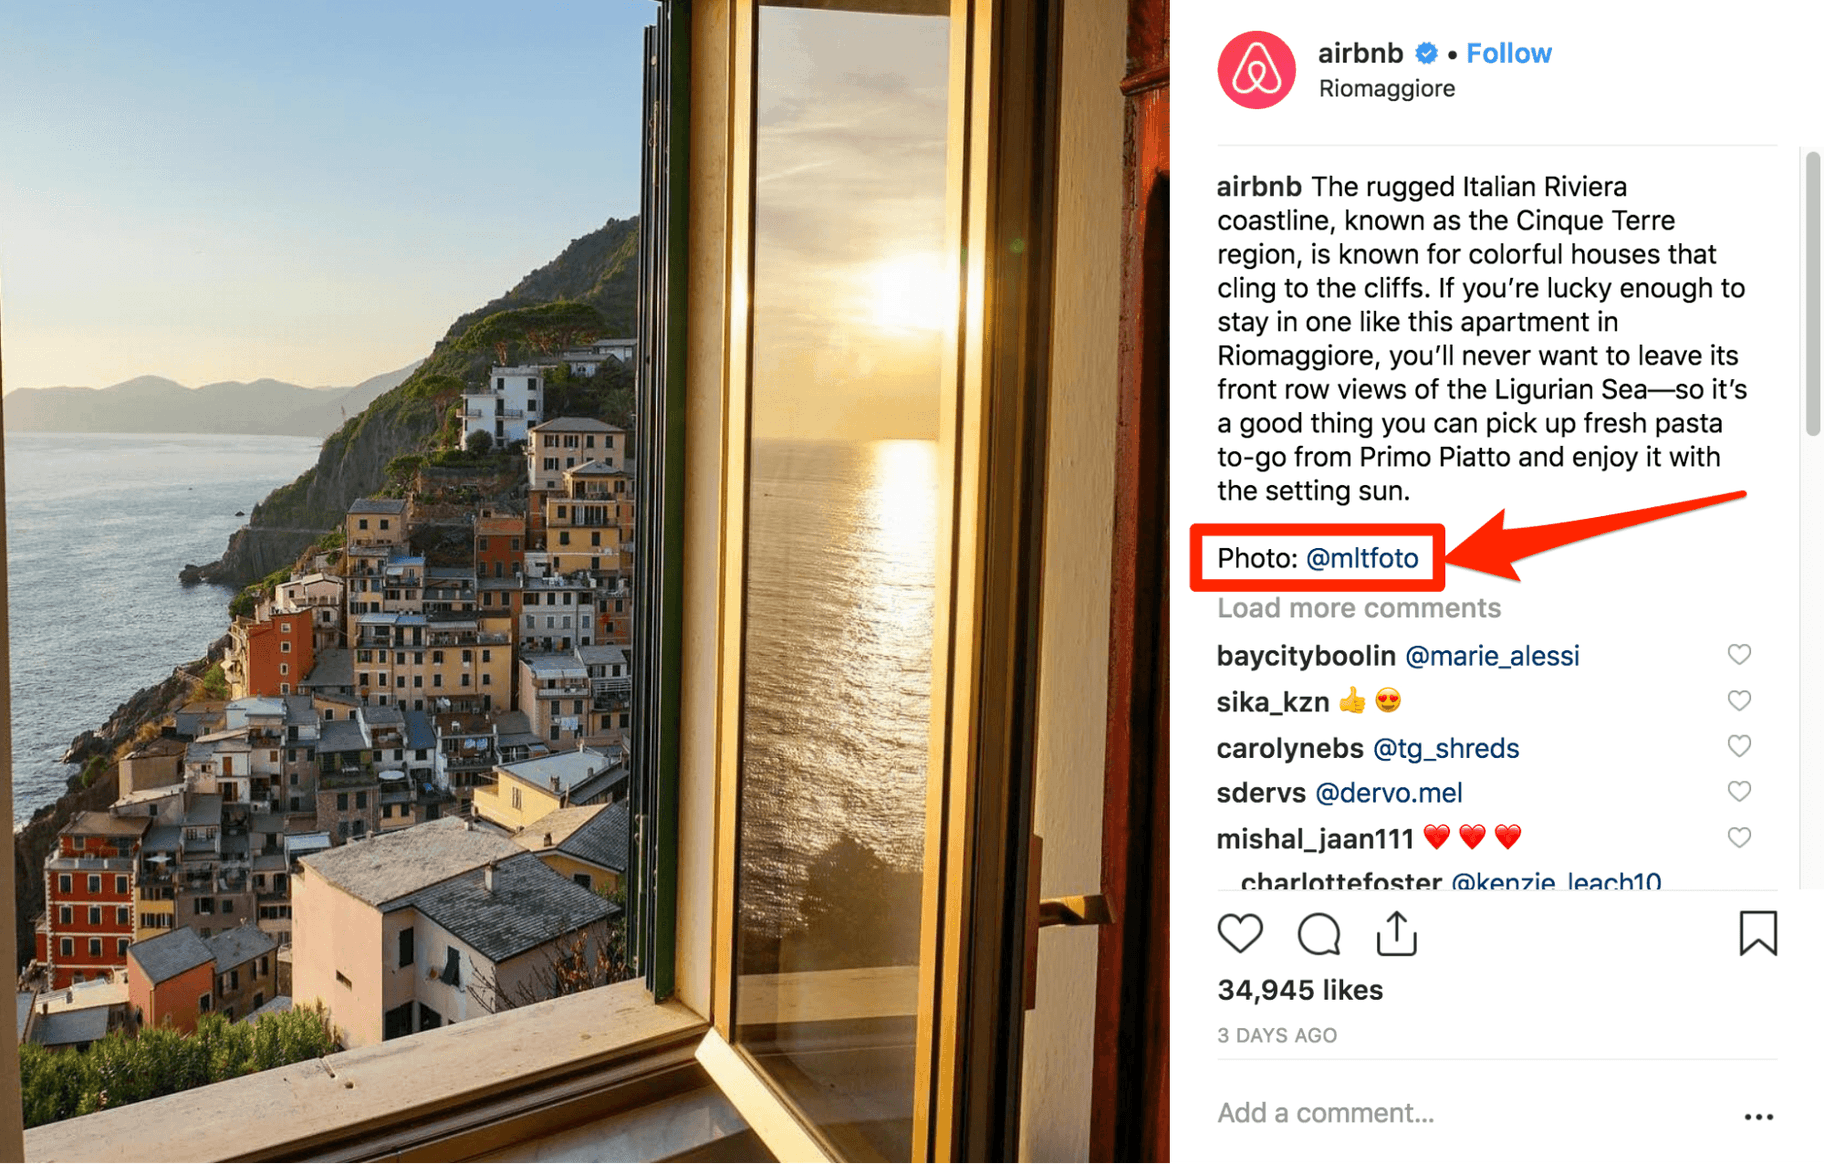 AirBNB Instagram Post